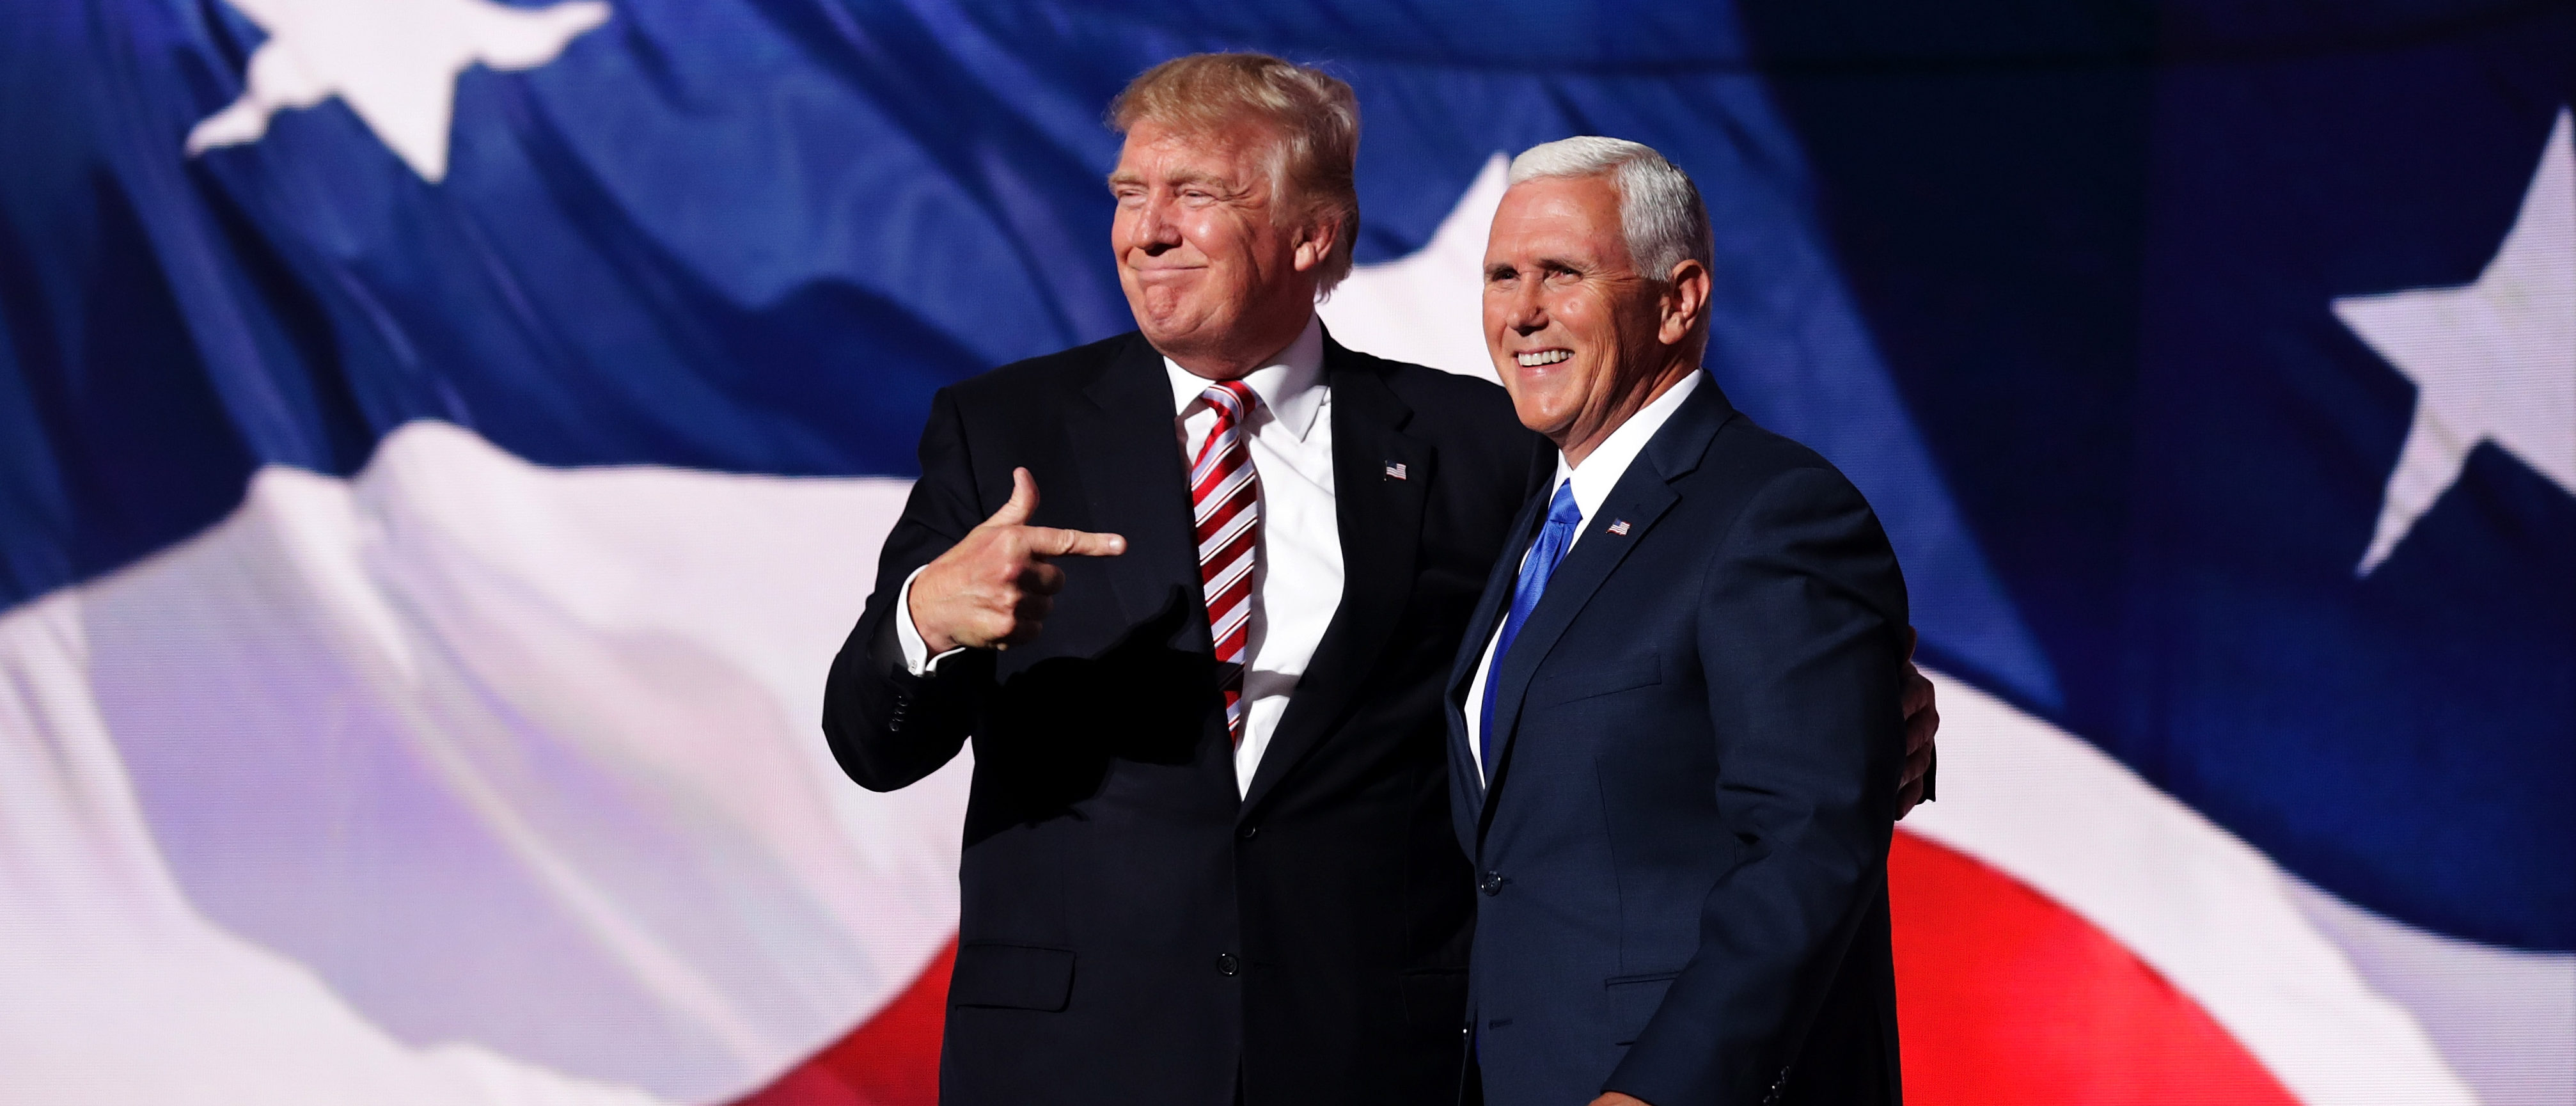 Republican presidential candidate Donald Trump stand with Republican vice presidential candidate Mike Pence and acknowledge the crowd on the third day of the Republican National Convention on July 20, 2016 at the Quicken Loans Arena in Cleveland, Ohio. (Photo by Chip Somodevilla/Getty Images)